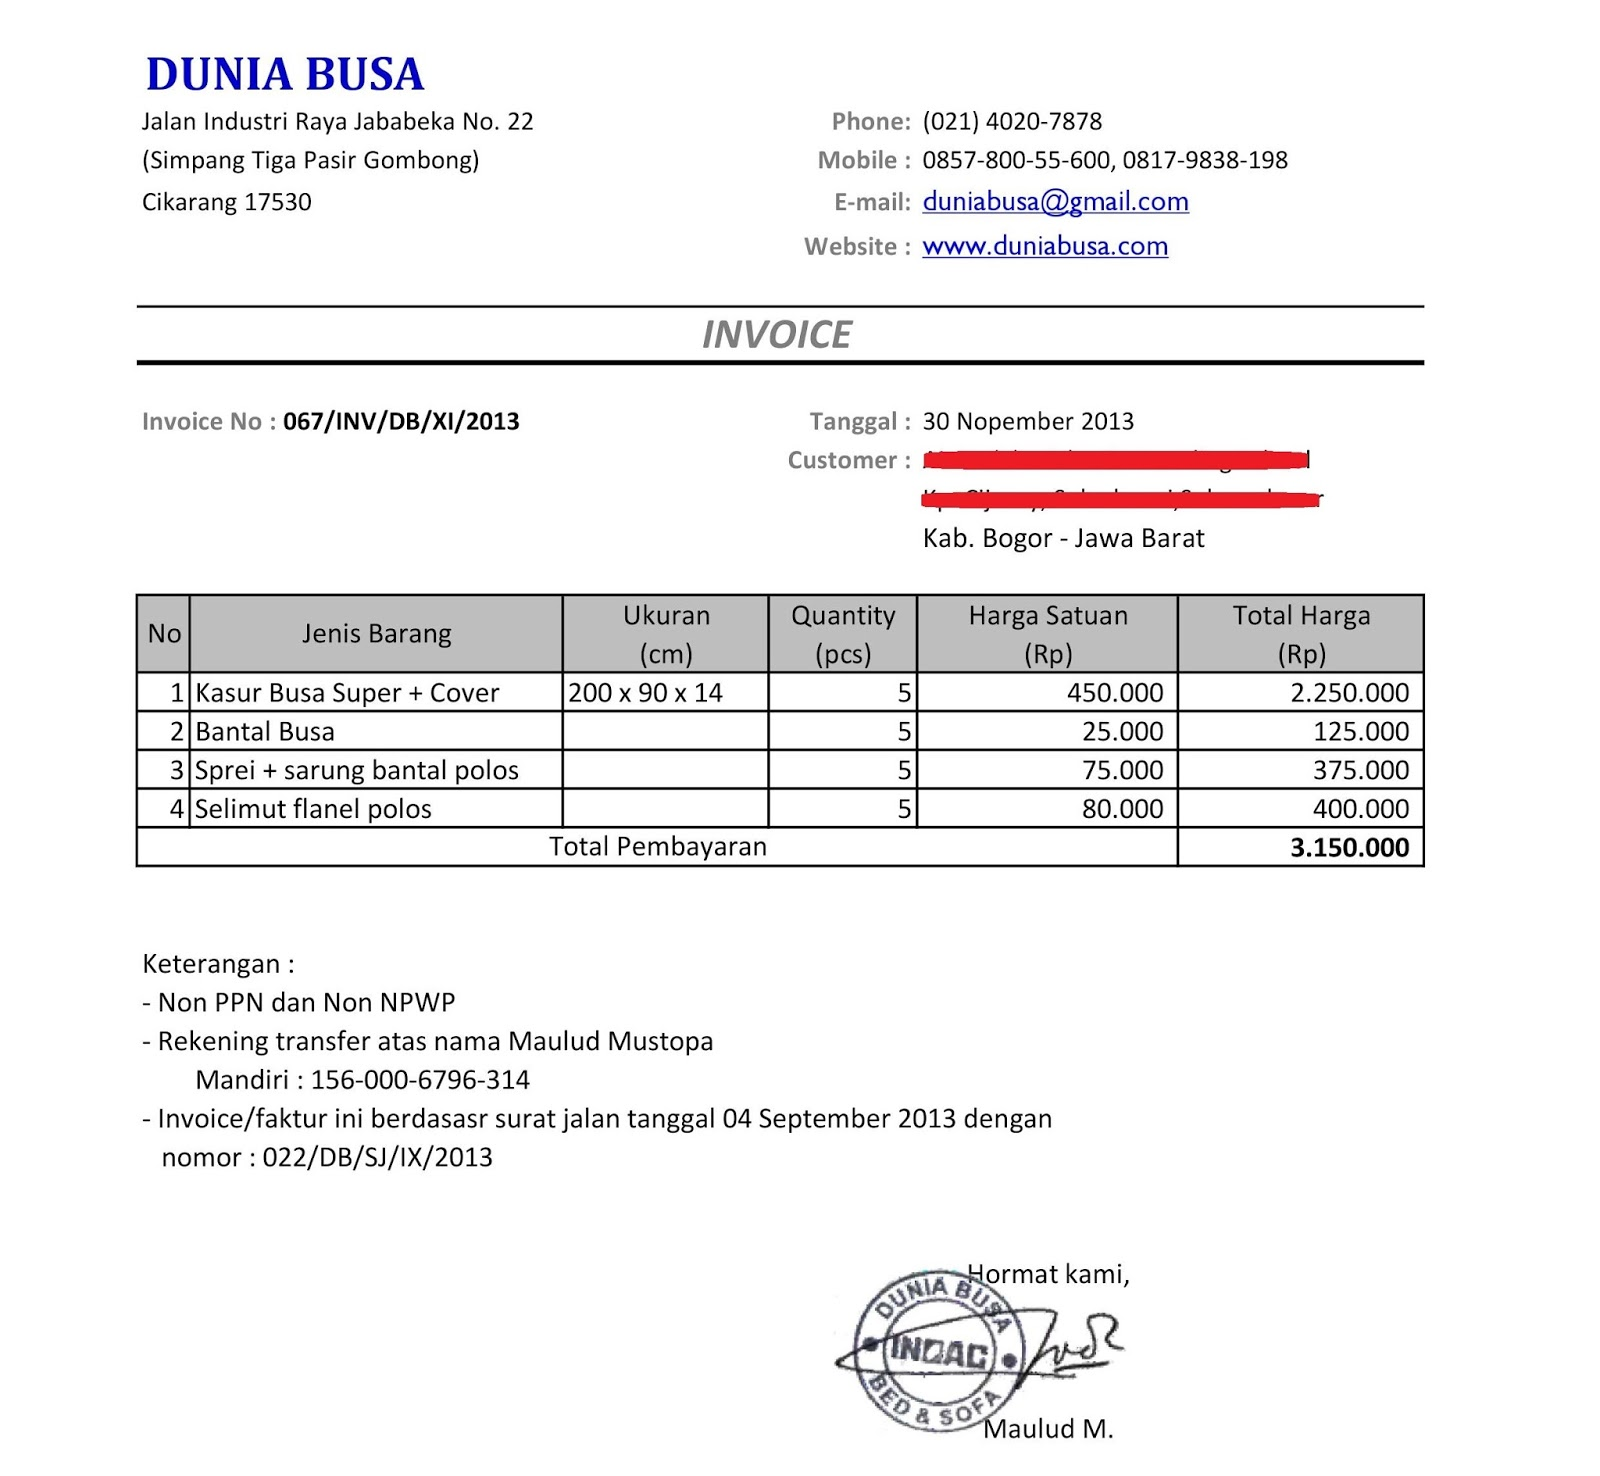 Aldiablosus  Unique Free Invoice Online  Create Invoice Online  Invoice Template  With Goodlooking Contoh Format Invoice Atau Surat Tagihan  Brankas Arsip  Free Invoice Online With Amazing Make Your Own Invoice Template Free Also Child Care Invoice In Addition How To Create Recurring Invoices In Quickbooks And Ford Raptor Invoice Price As Well As What Is Profoma Invoice Additionally Ups Invoice Scam From Sklepco With Aldiablosus  Goodlooking Free Invoice Online  Create Invoice Online  Invoice Template  With Amazing Contoh Format Invoice Atau Surat Tagihan  Brankas Arsip  Free Invoice Online And Unique Make Your Own Invoice Template Free Also Child Care Invoice In Addition How To Create Recurring Invoices In Quickbooks From Sklepco